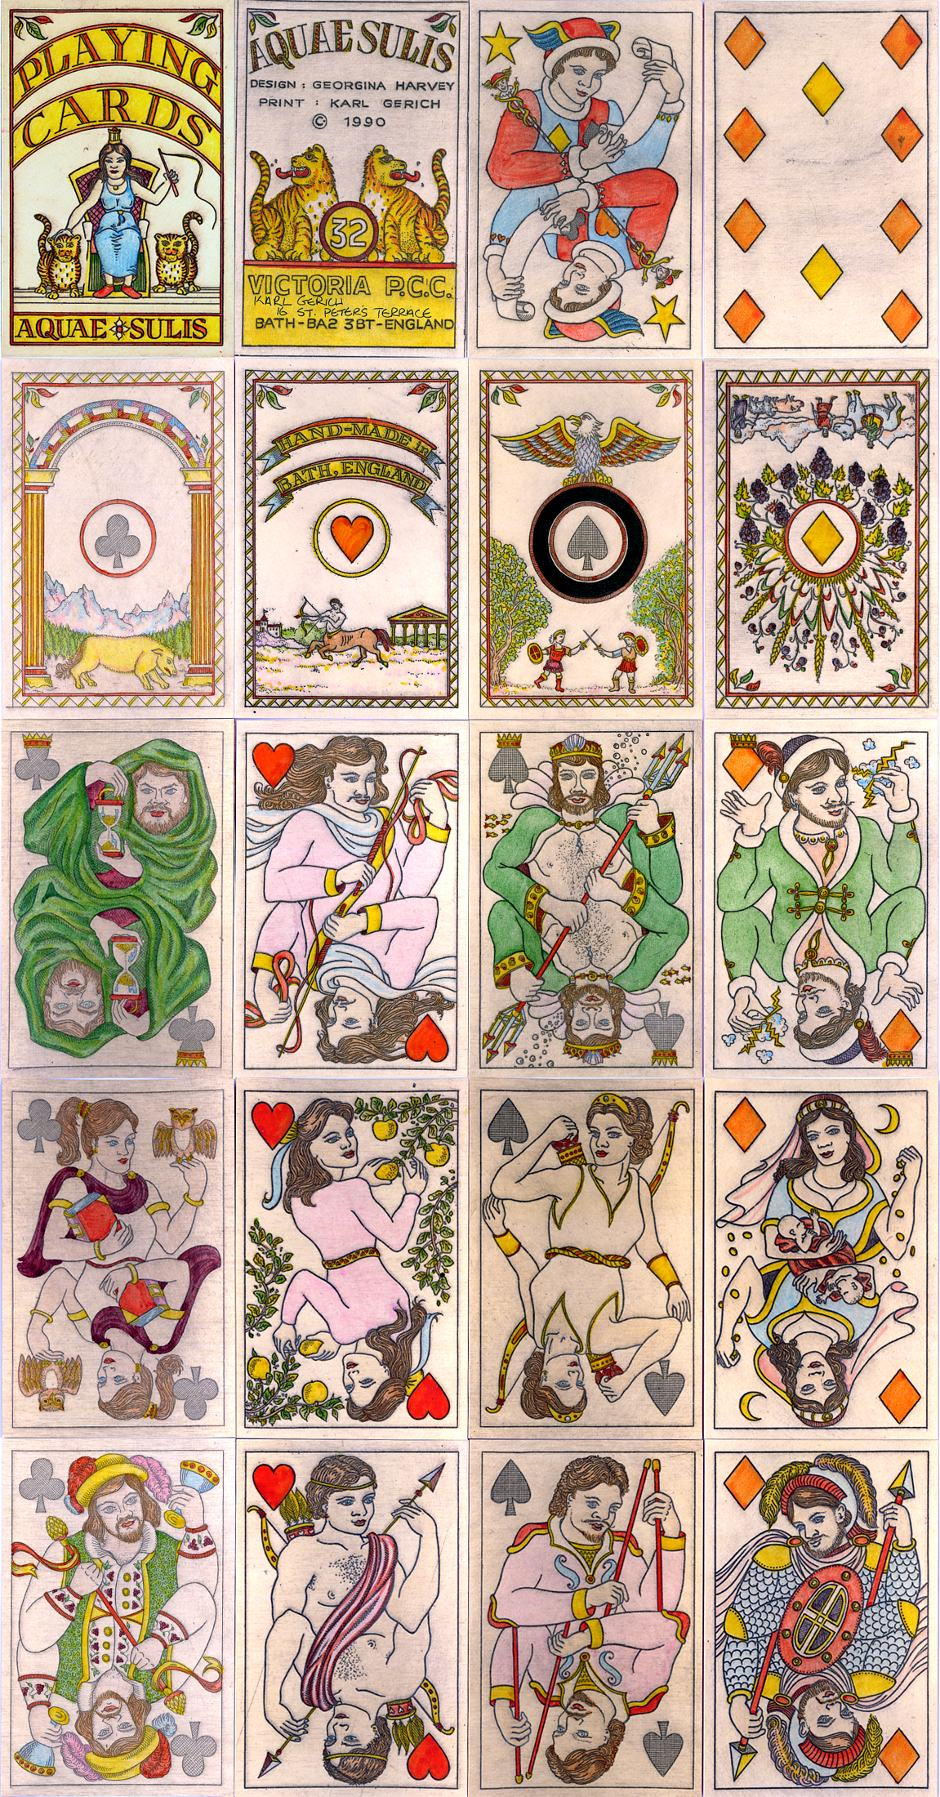 'Aquae Sulis' playing cards no.32, designed by Georgina Harvey and printed from copperplate etching by Karl Gerich trading as Victoria P.C.C., 1990.